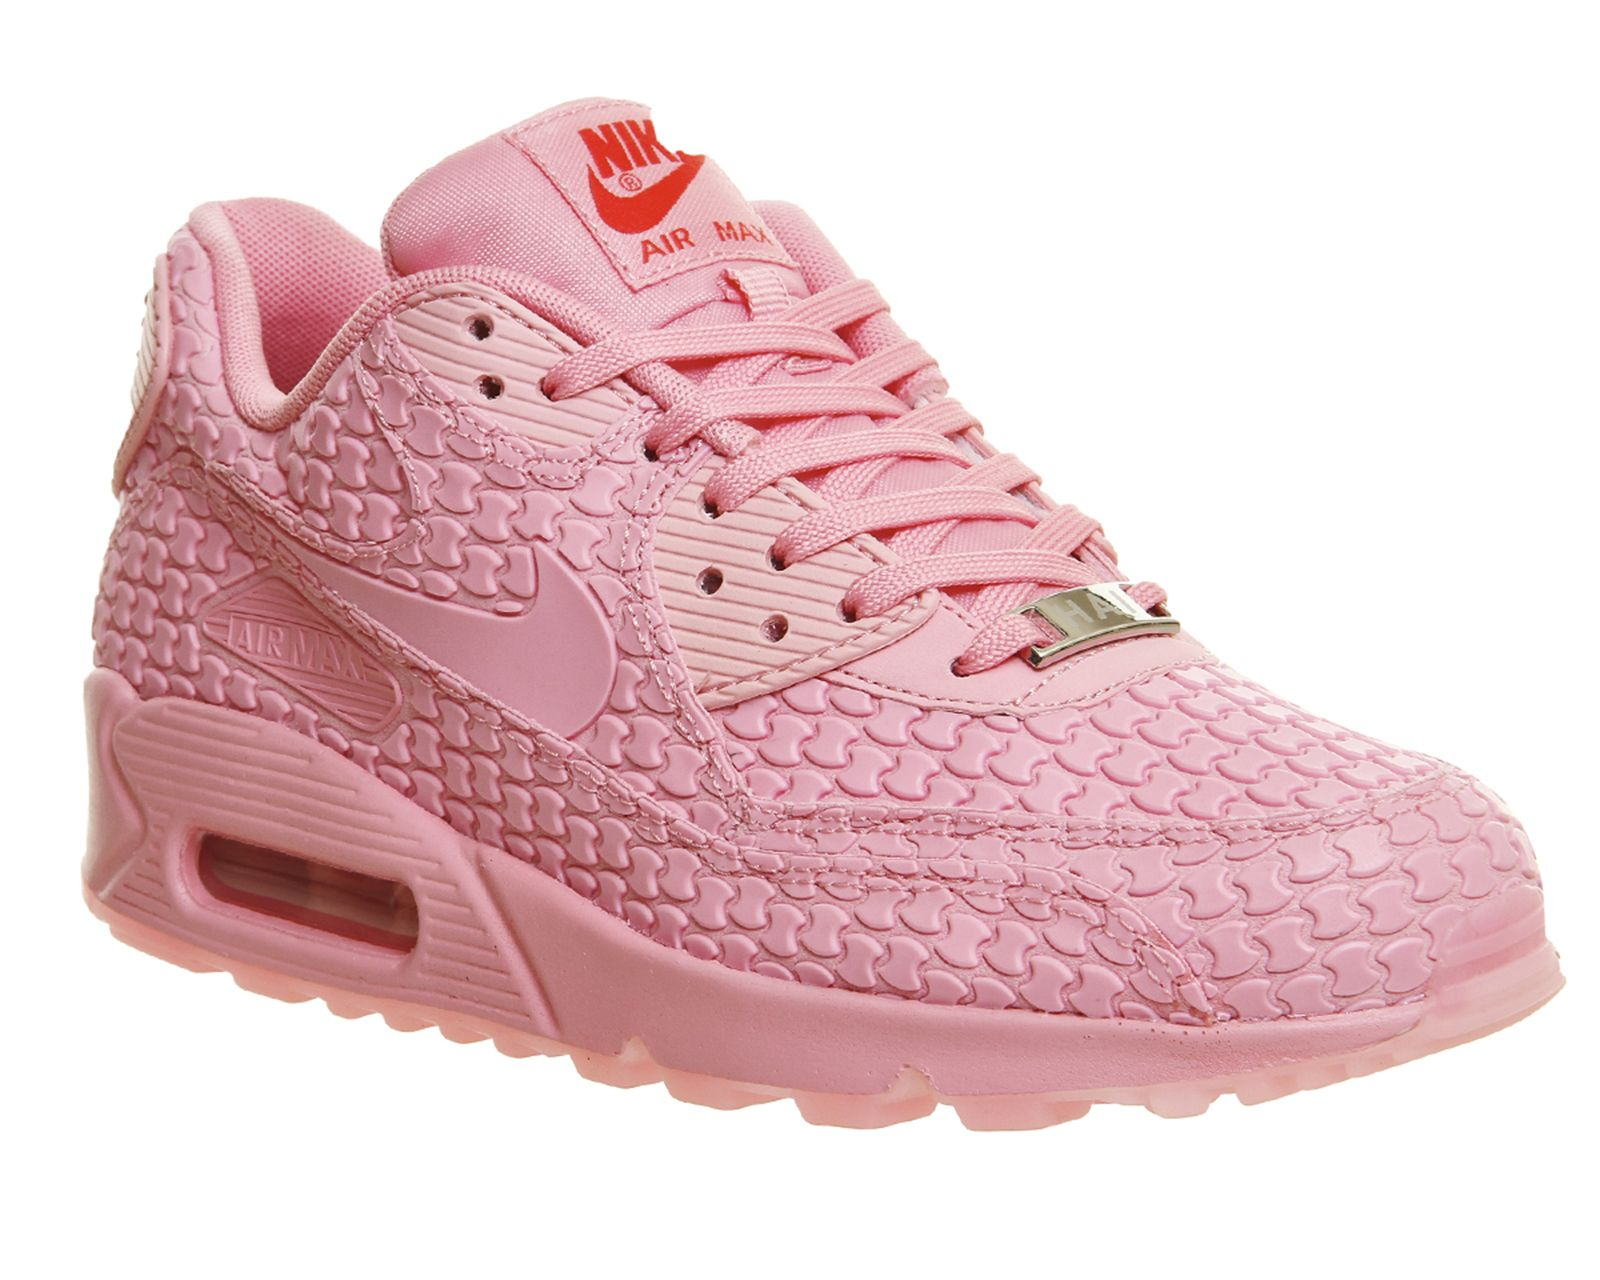 nike pink shanghai air max 90 sweets trainers hate